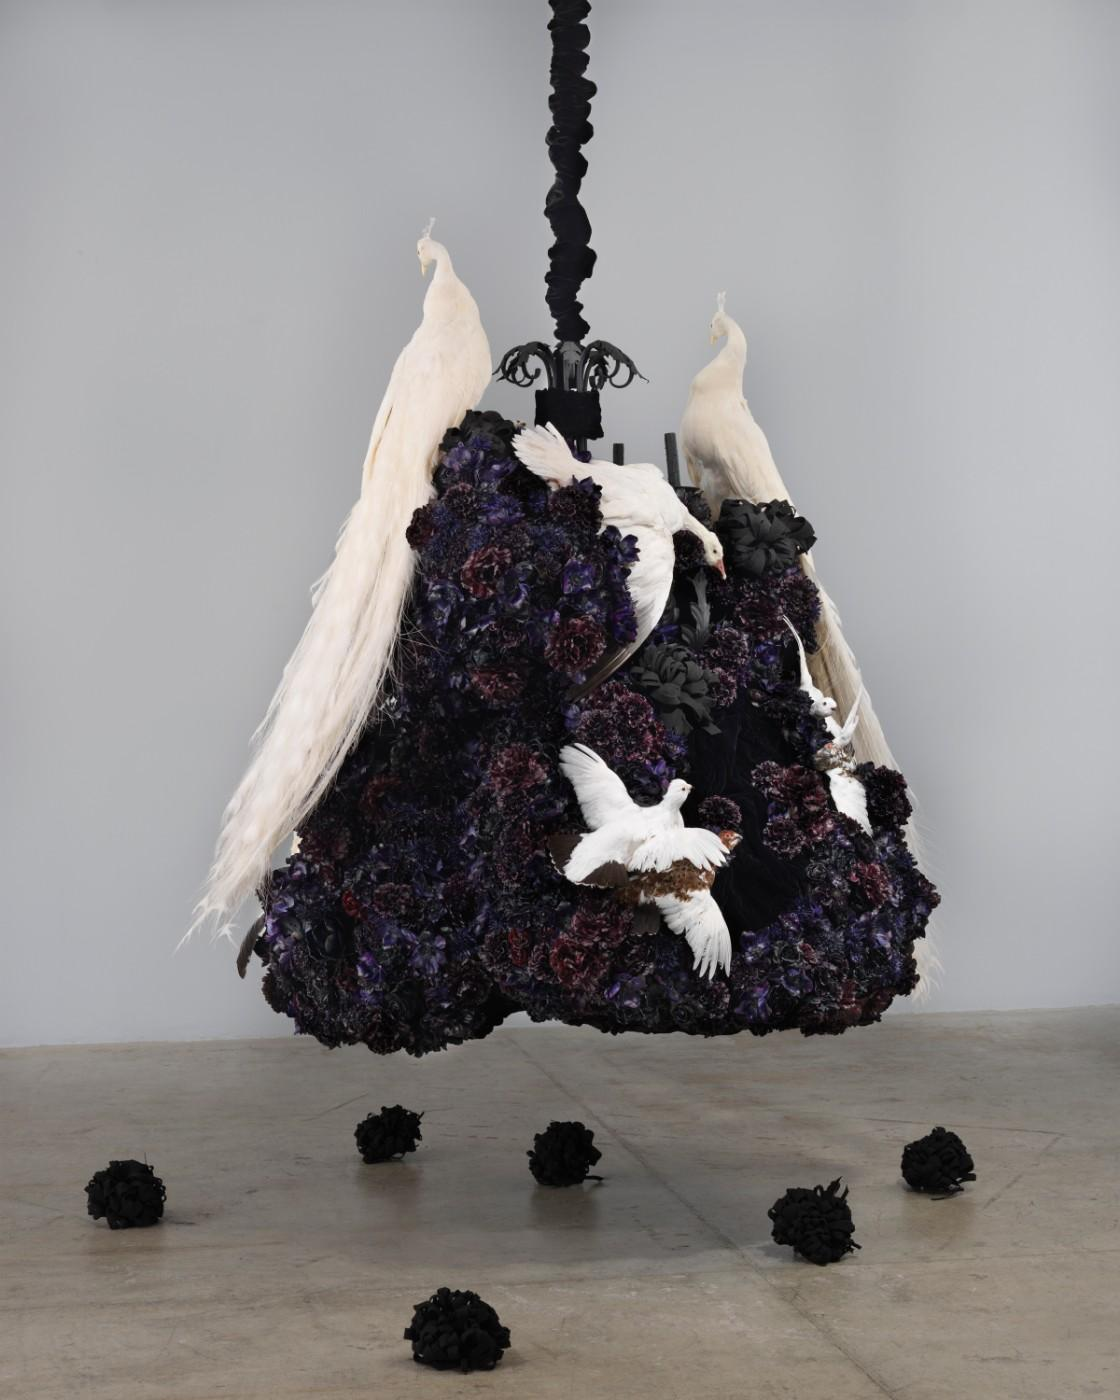 Petah Coyne, Untitled #1375 (No Reason Except Love: Portrait of a Marriage), 2011-12